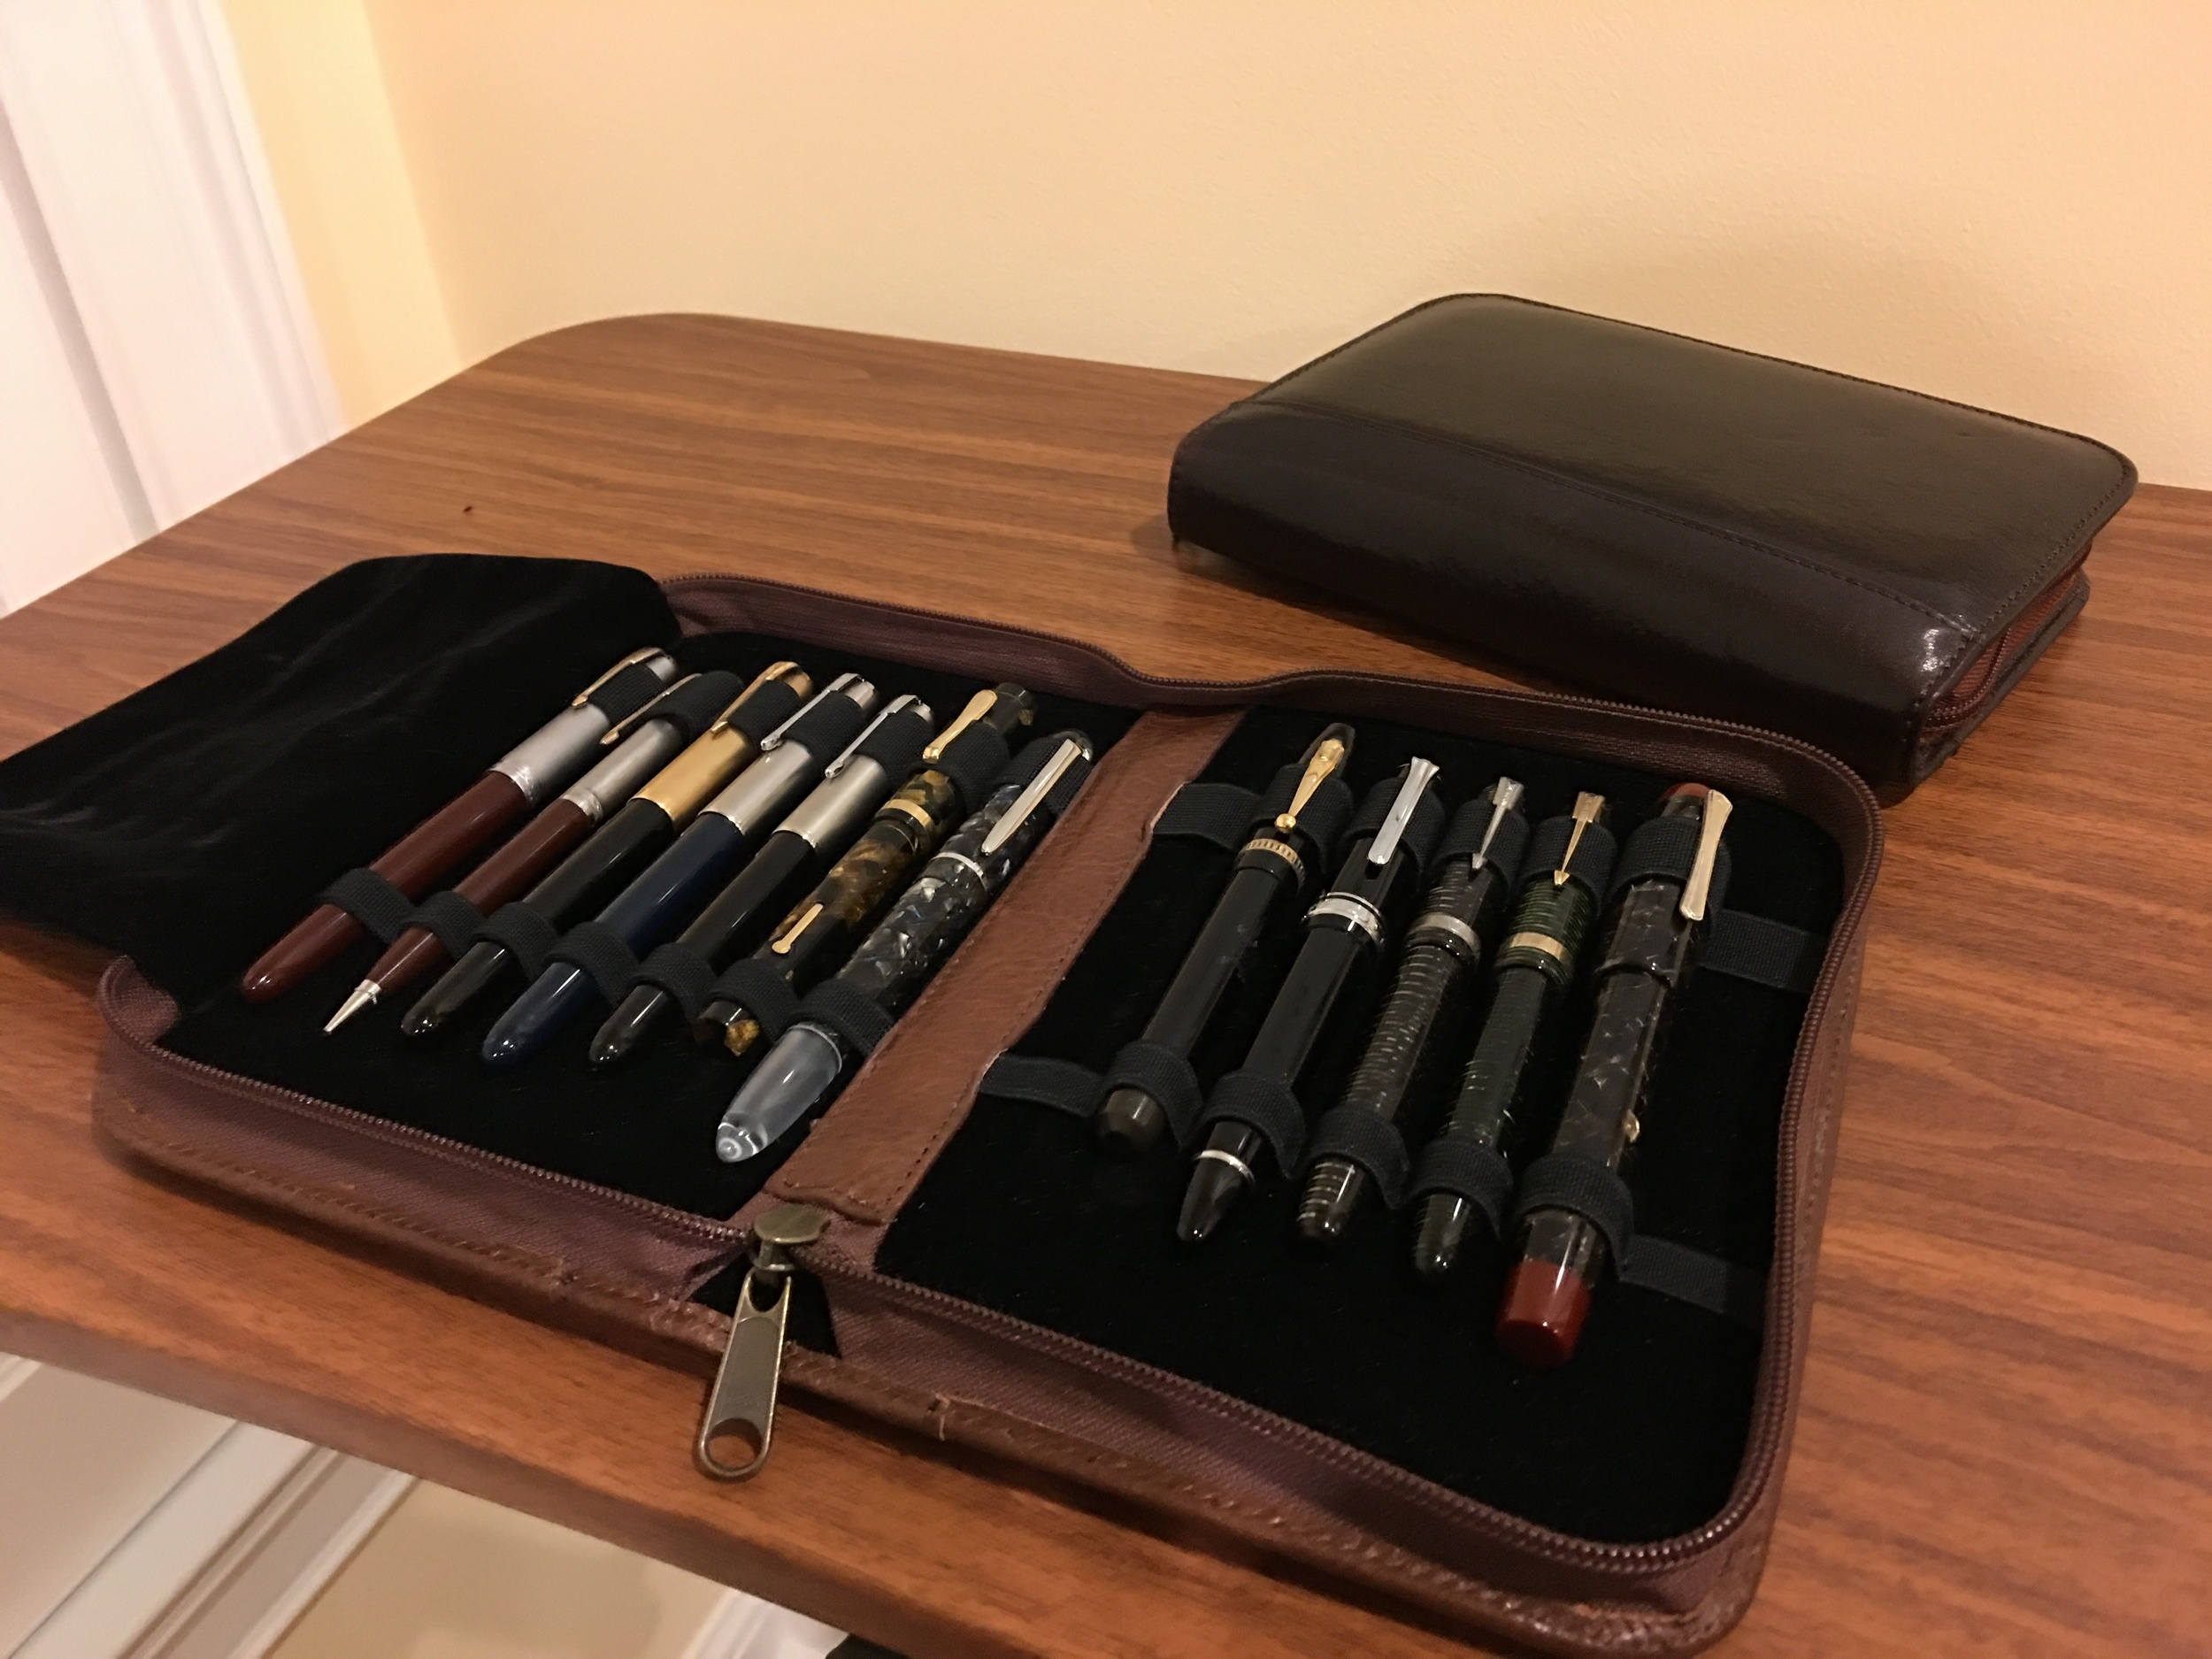 Aston leather 10-pen folio (though I've found you can easily get 14 pens into this case).